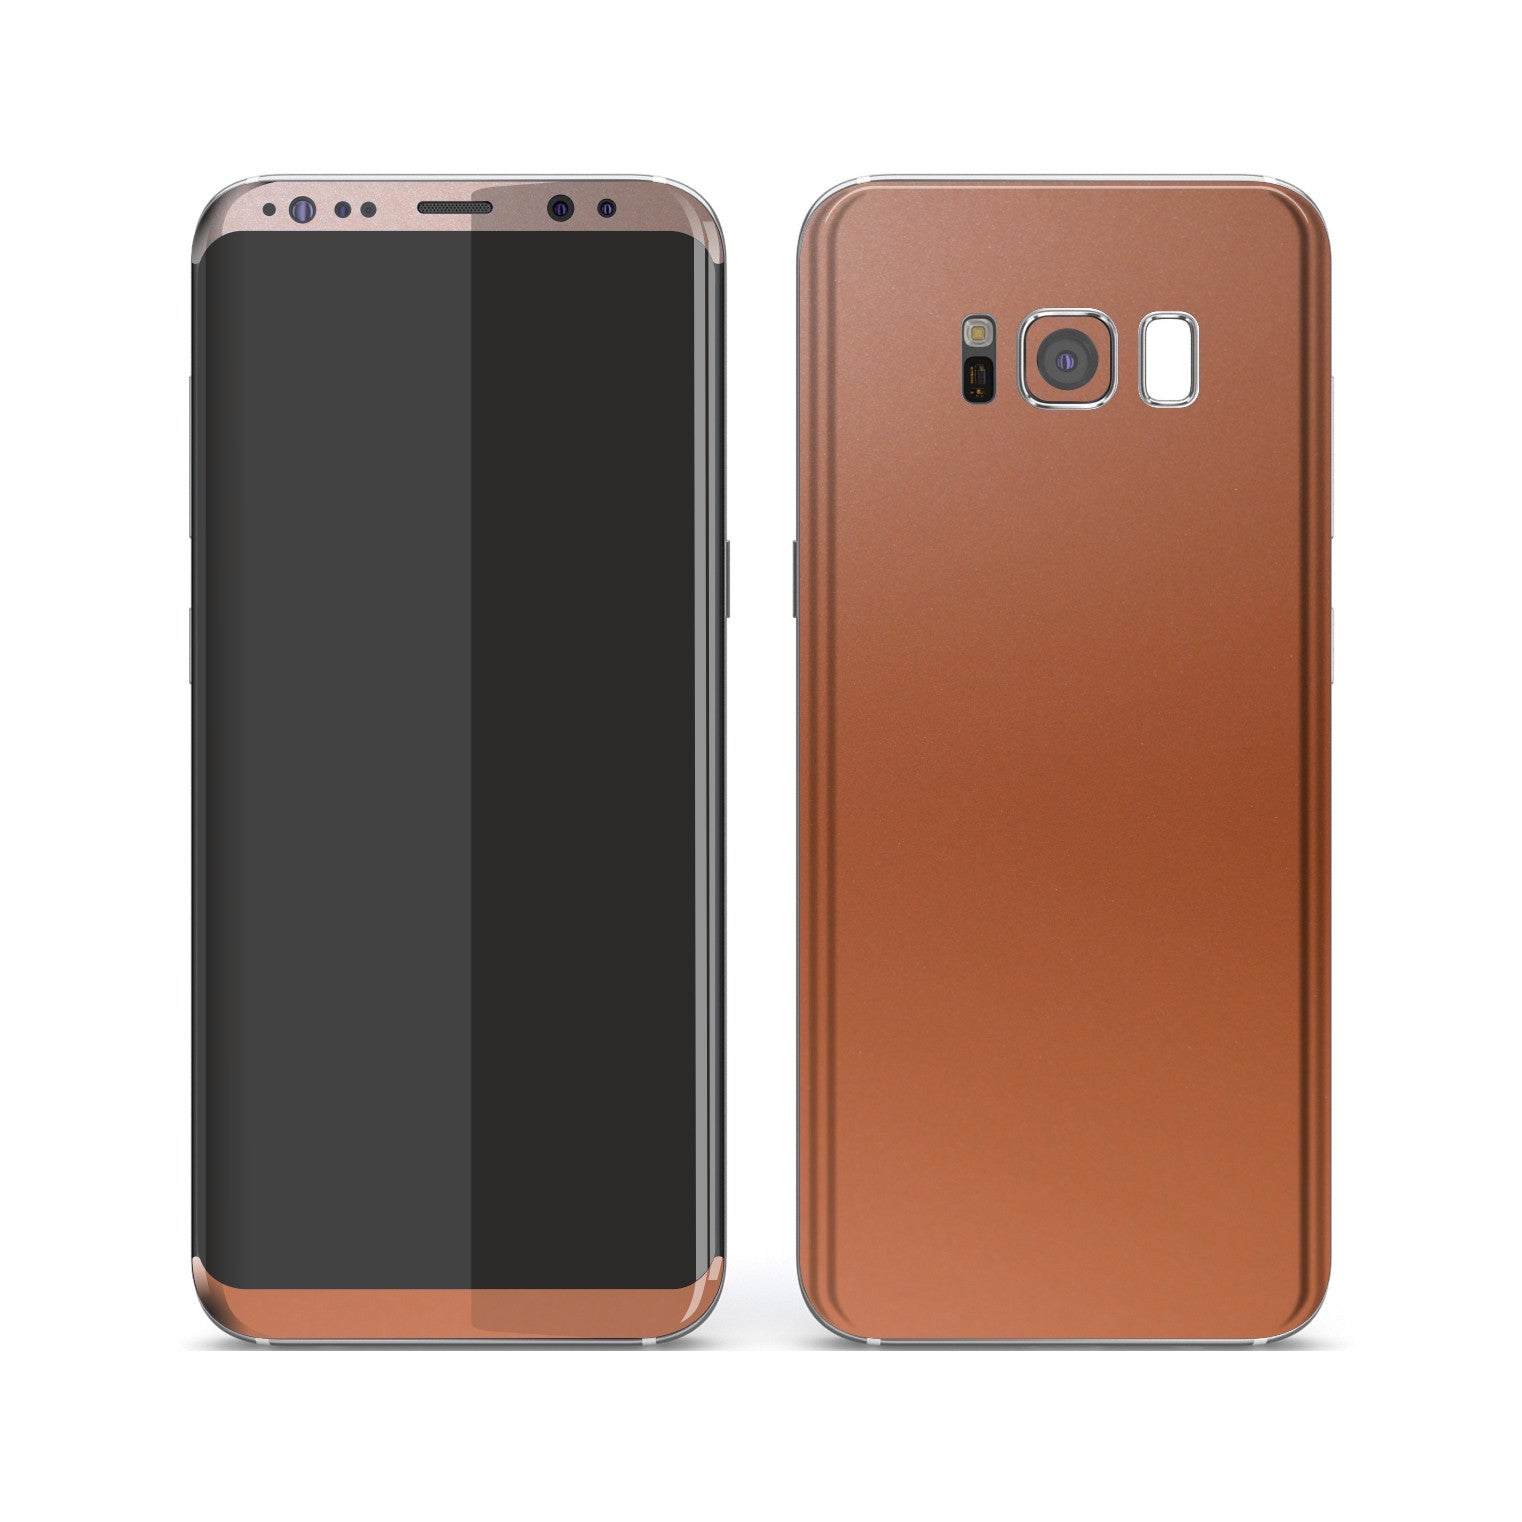 Samsung Galaxy S8+ Rose Gold Matt Metallic Skin, Decal, Wrap, Protector, Cover by EasySkinz | EasySkinz.com